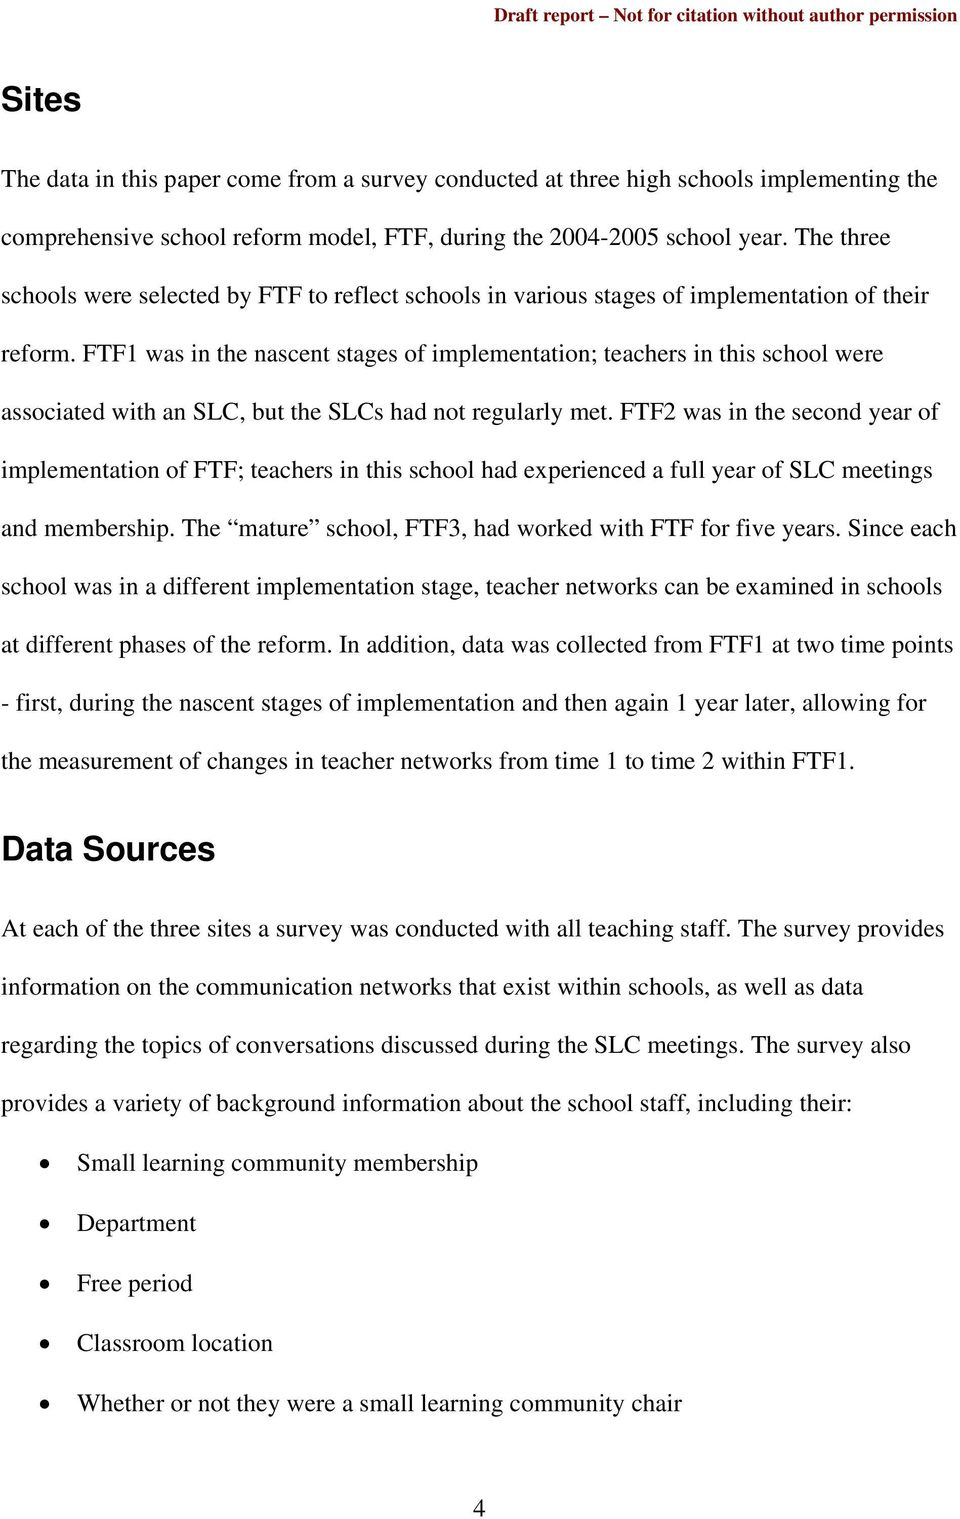 FTF1 was in the nascent stages of implementation; teachers in this school were associated with an SLC, but the SLCs had not regularly met.